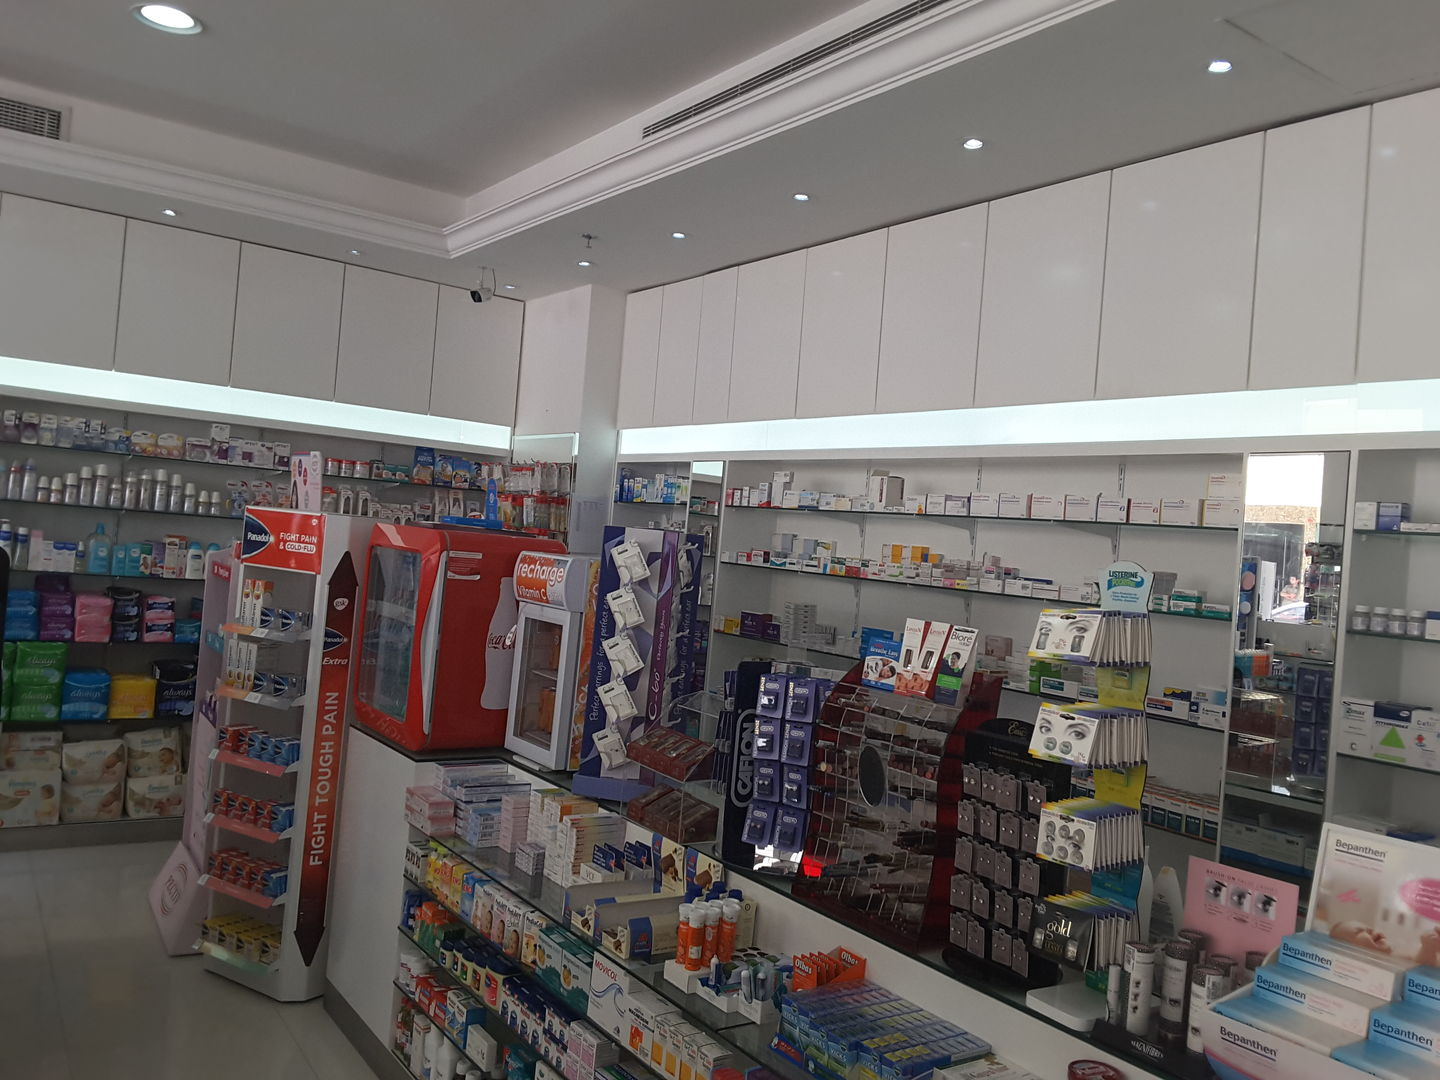 HiDubai-business-emirates-oasis-health-care-pharmacy-beauty-wellness-health-pharmacy-al-barsha-1-dubai-2